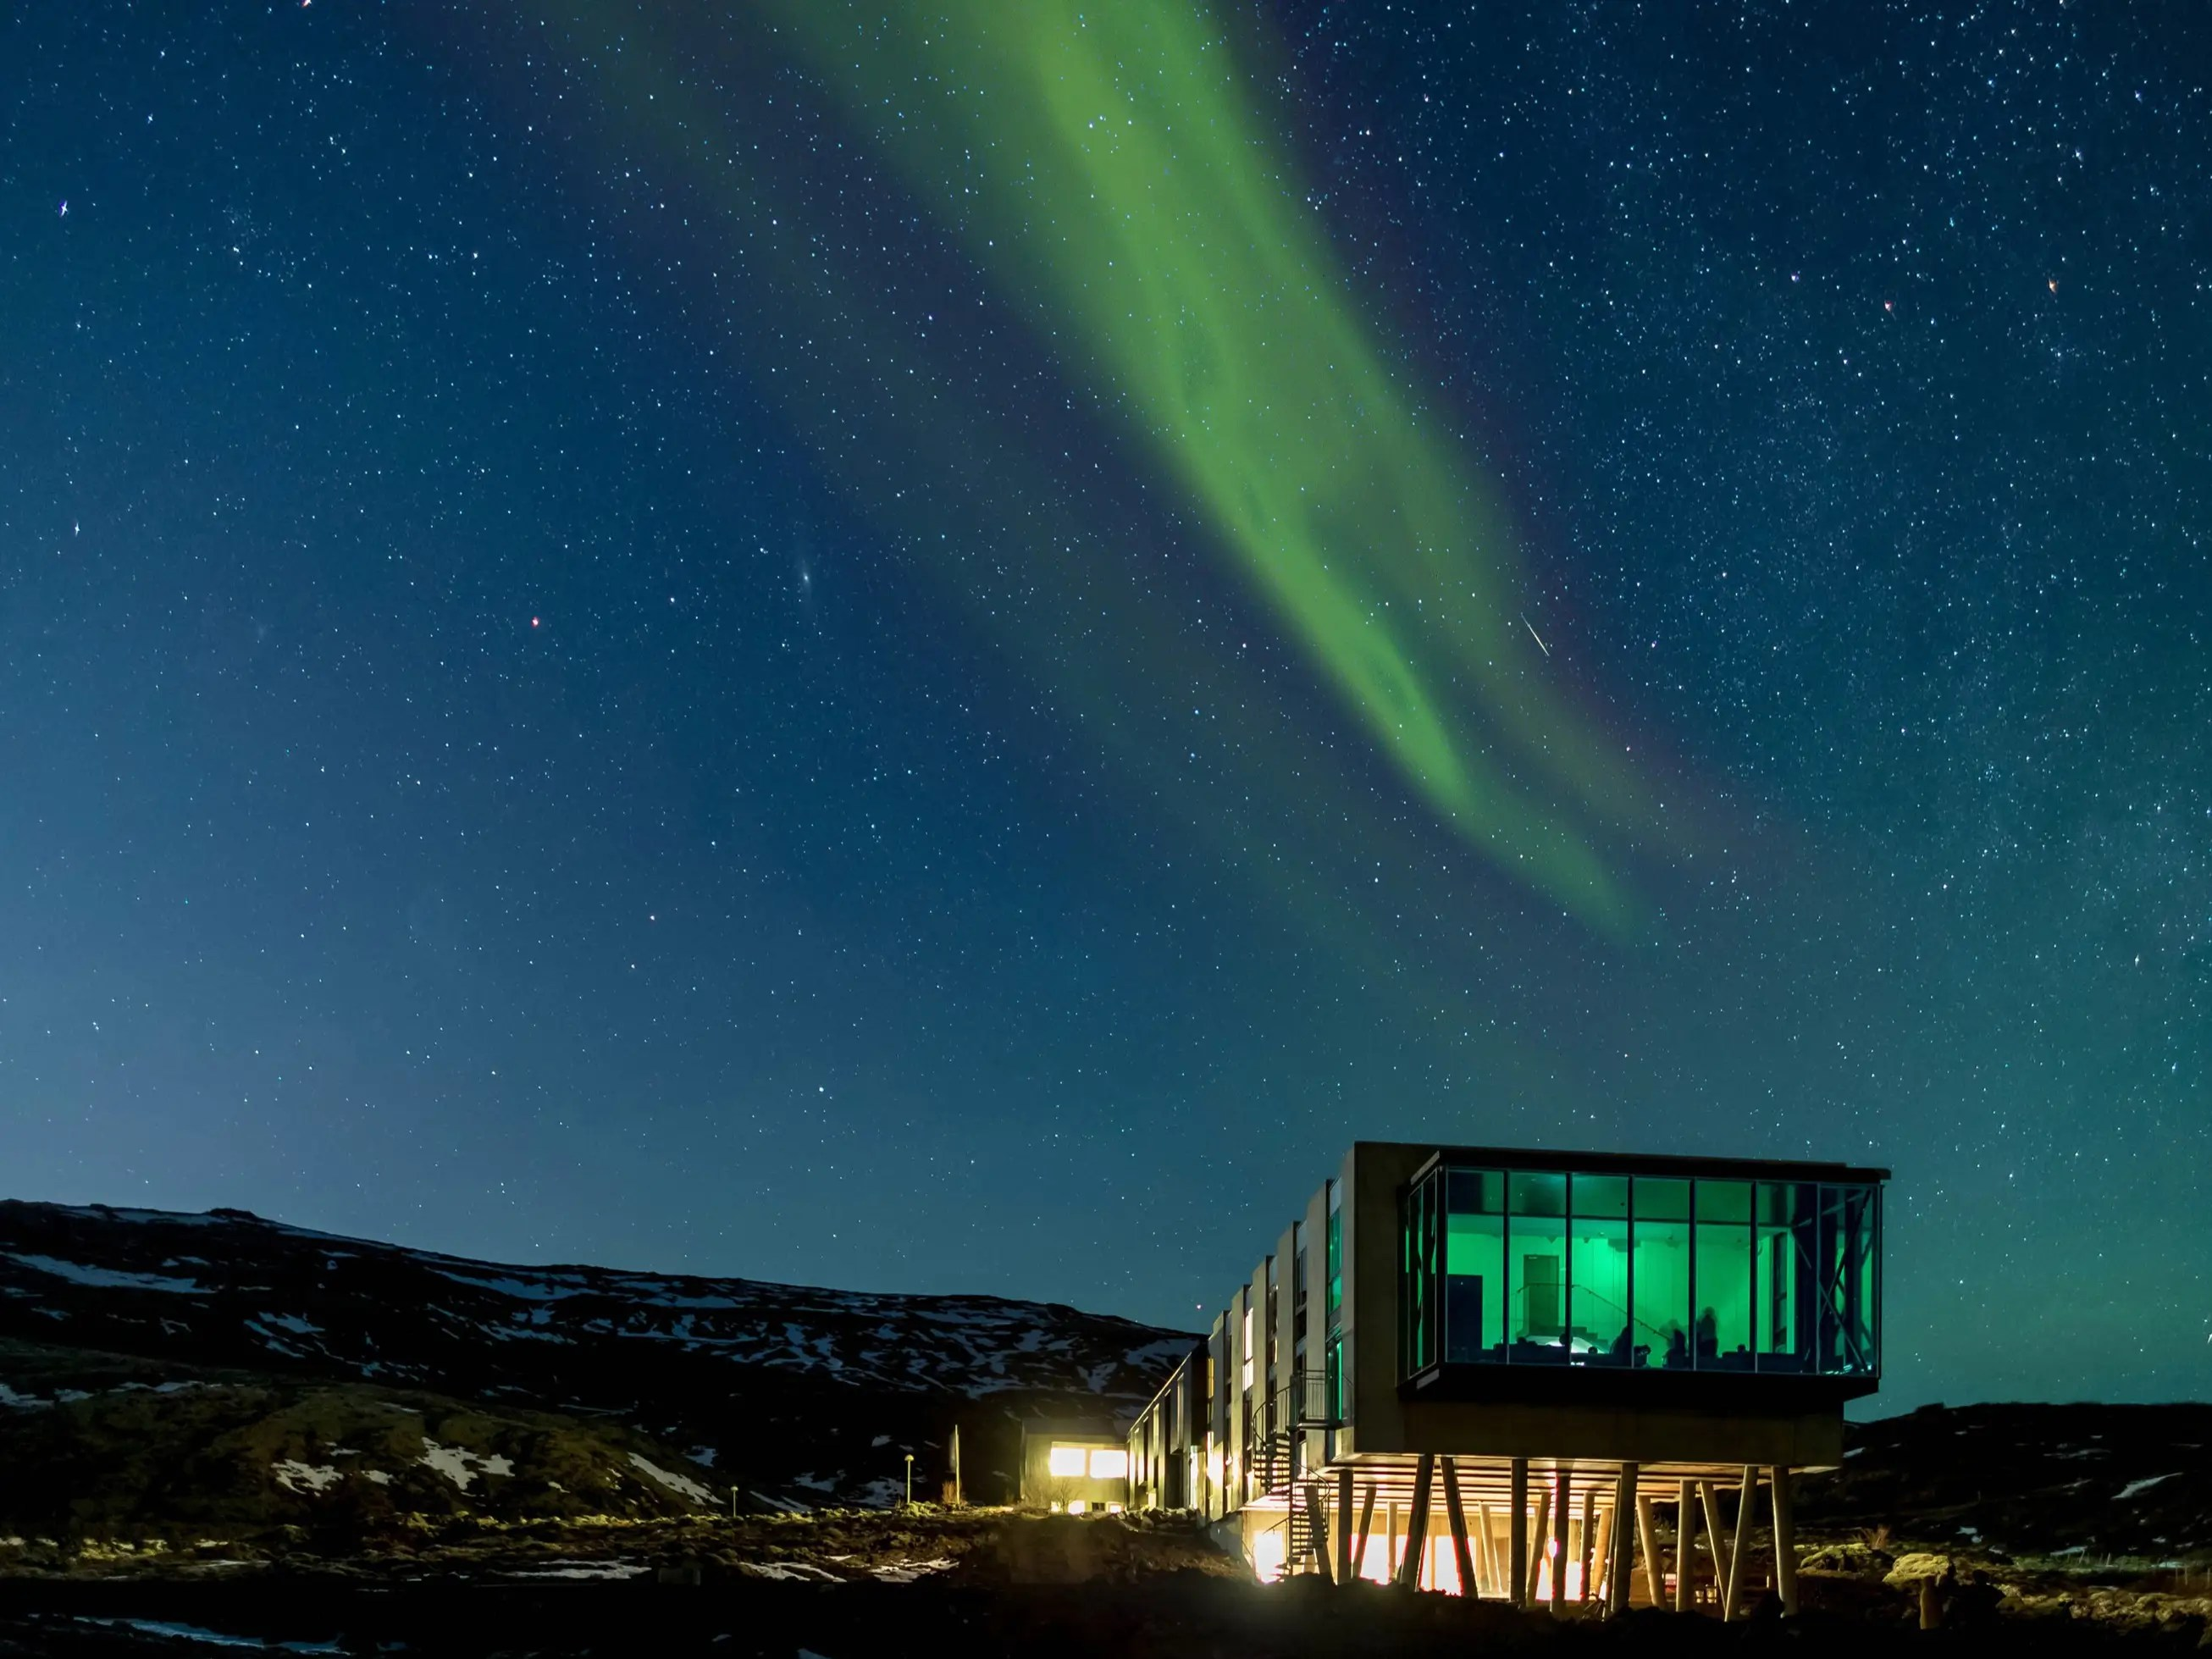 Inside Iceland's ION Luxury Adventure Hotel you'll find the Northern Lights Bar, a bar designed explicitly for optimal Northern Lights viewing. An hour from Reykjavík, amid mountains and lava fields, sits this glass cage of sorts, which juts out from the end of the hotel and occasionally has astronomers on hand to drop their aurora borealis knowledge.